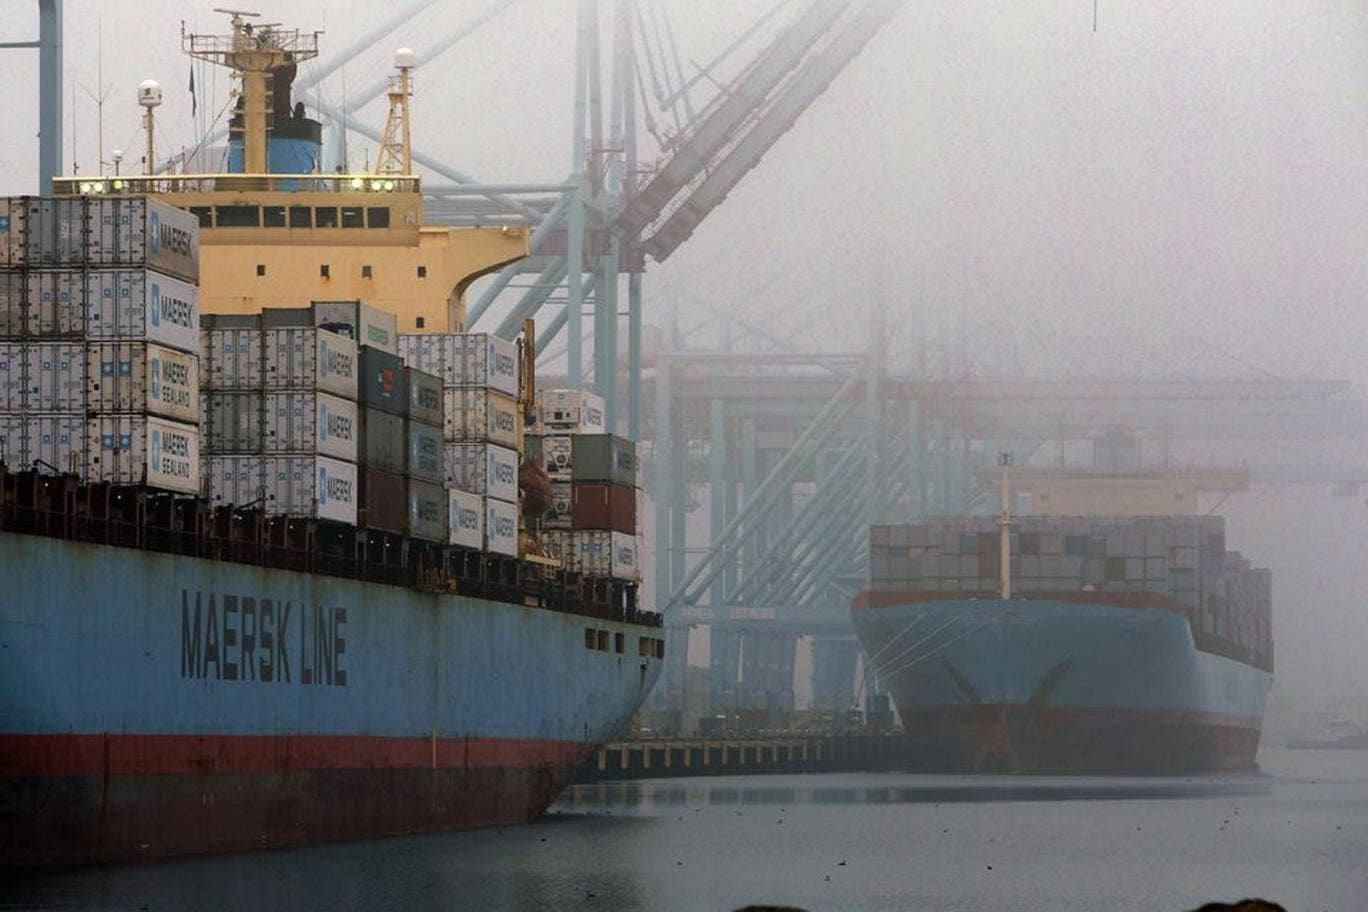 US economy shrinks unexpectedly in final quarter of 2012